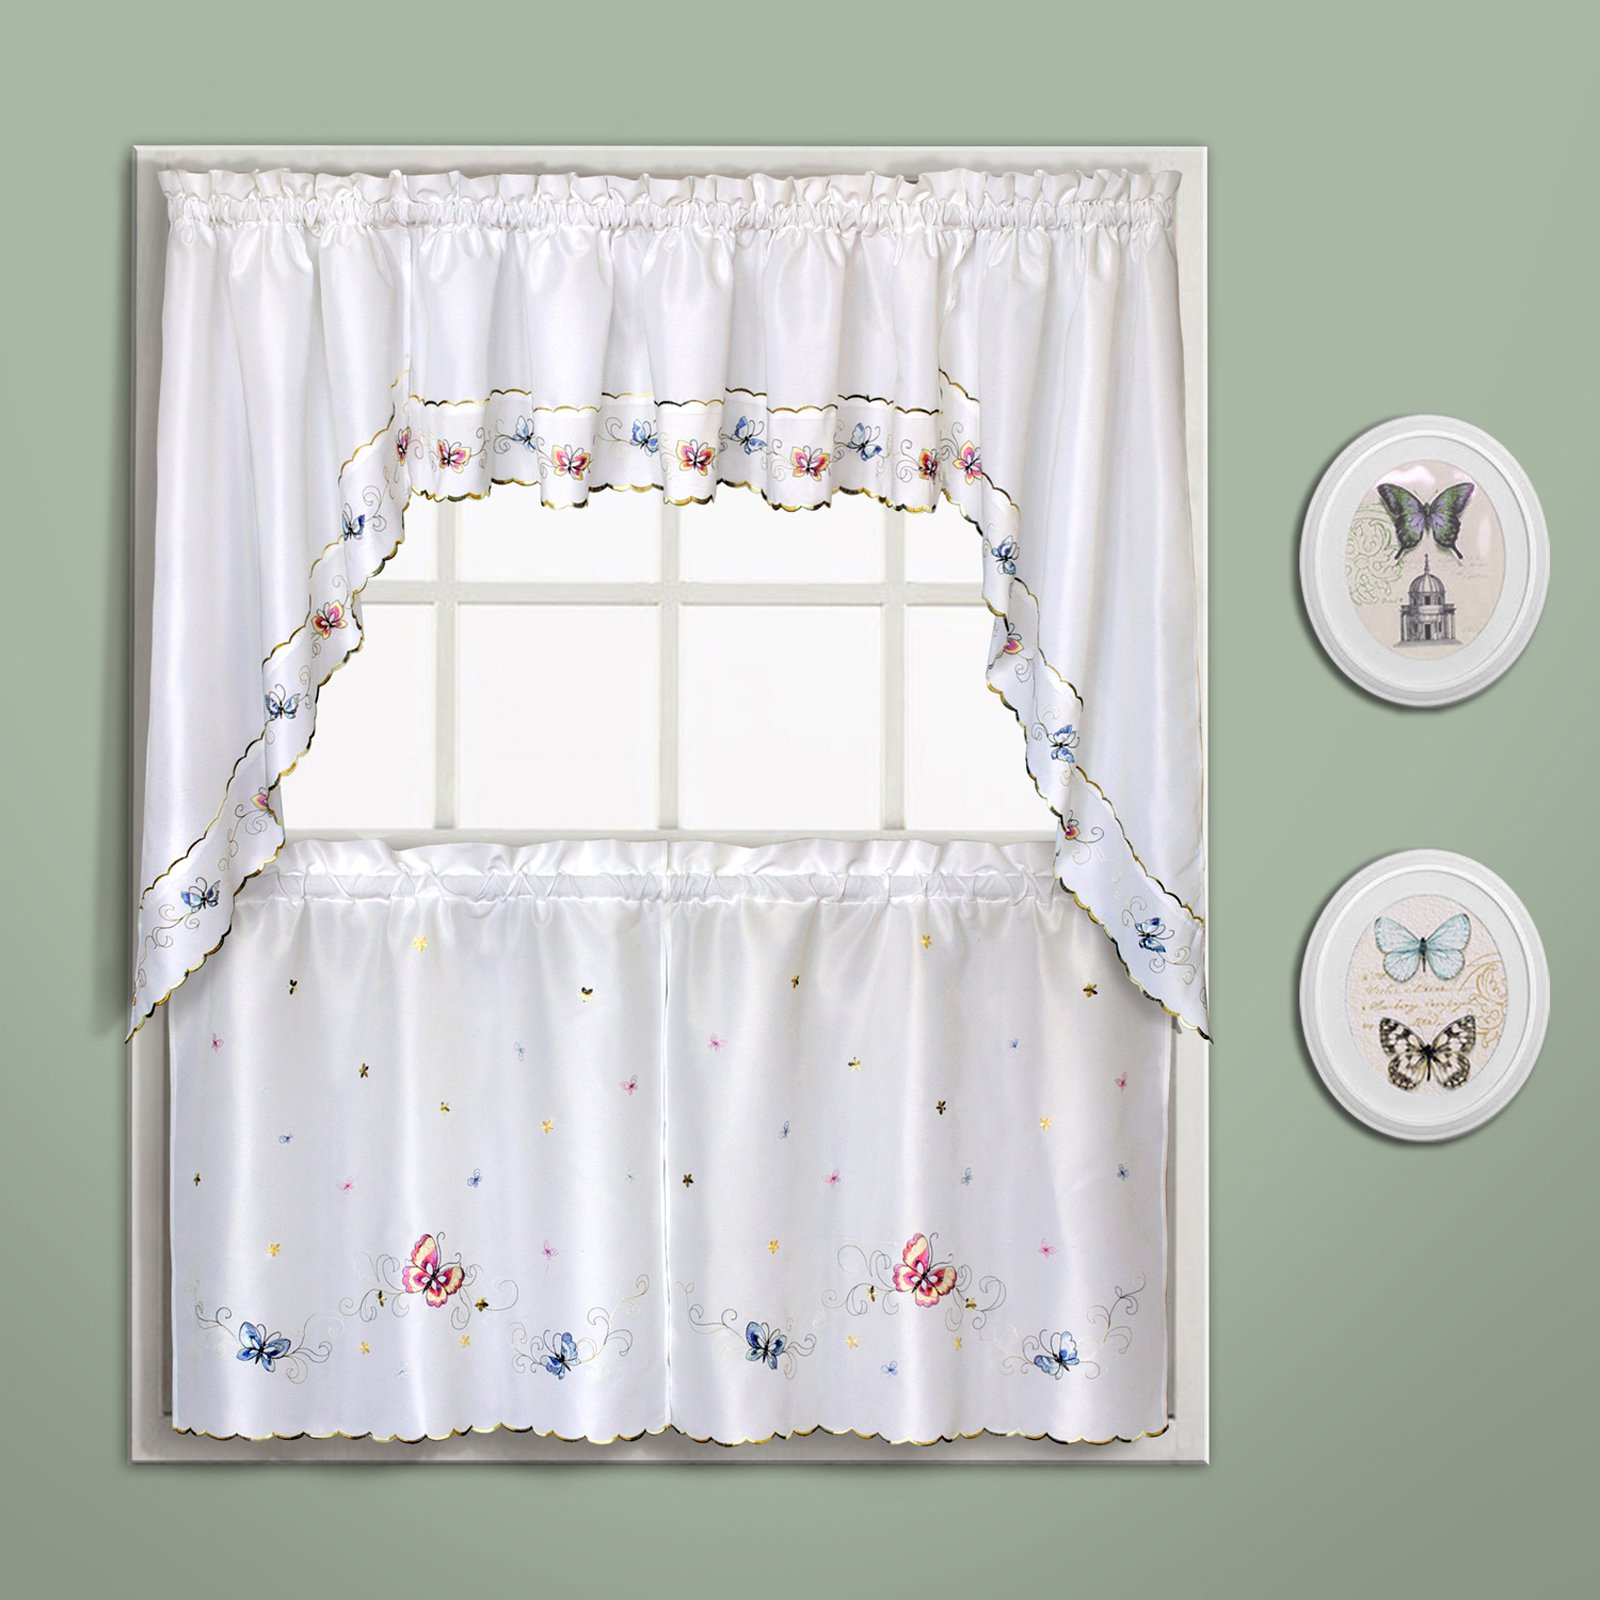 Butterfly 60 X 12 Window Curtain Valance Multi